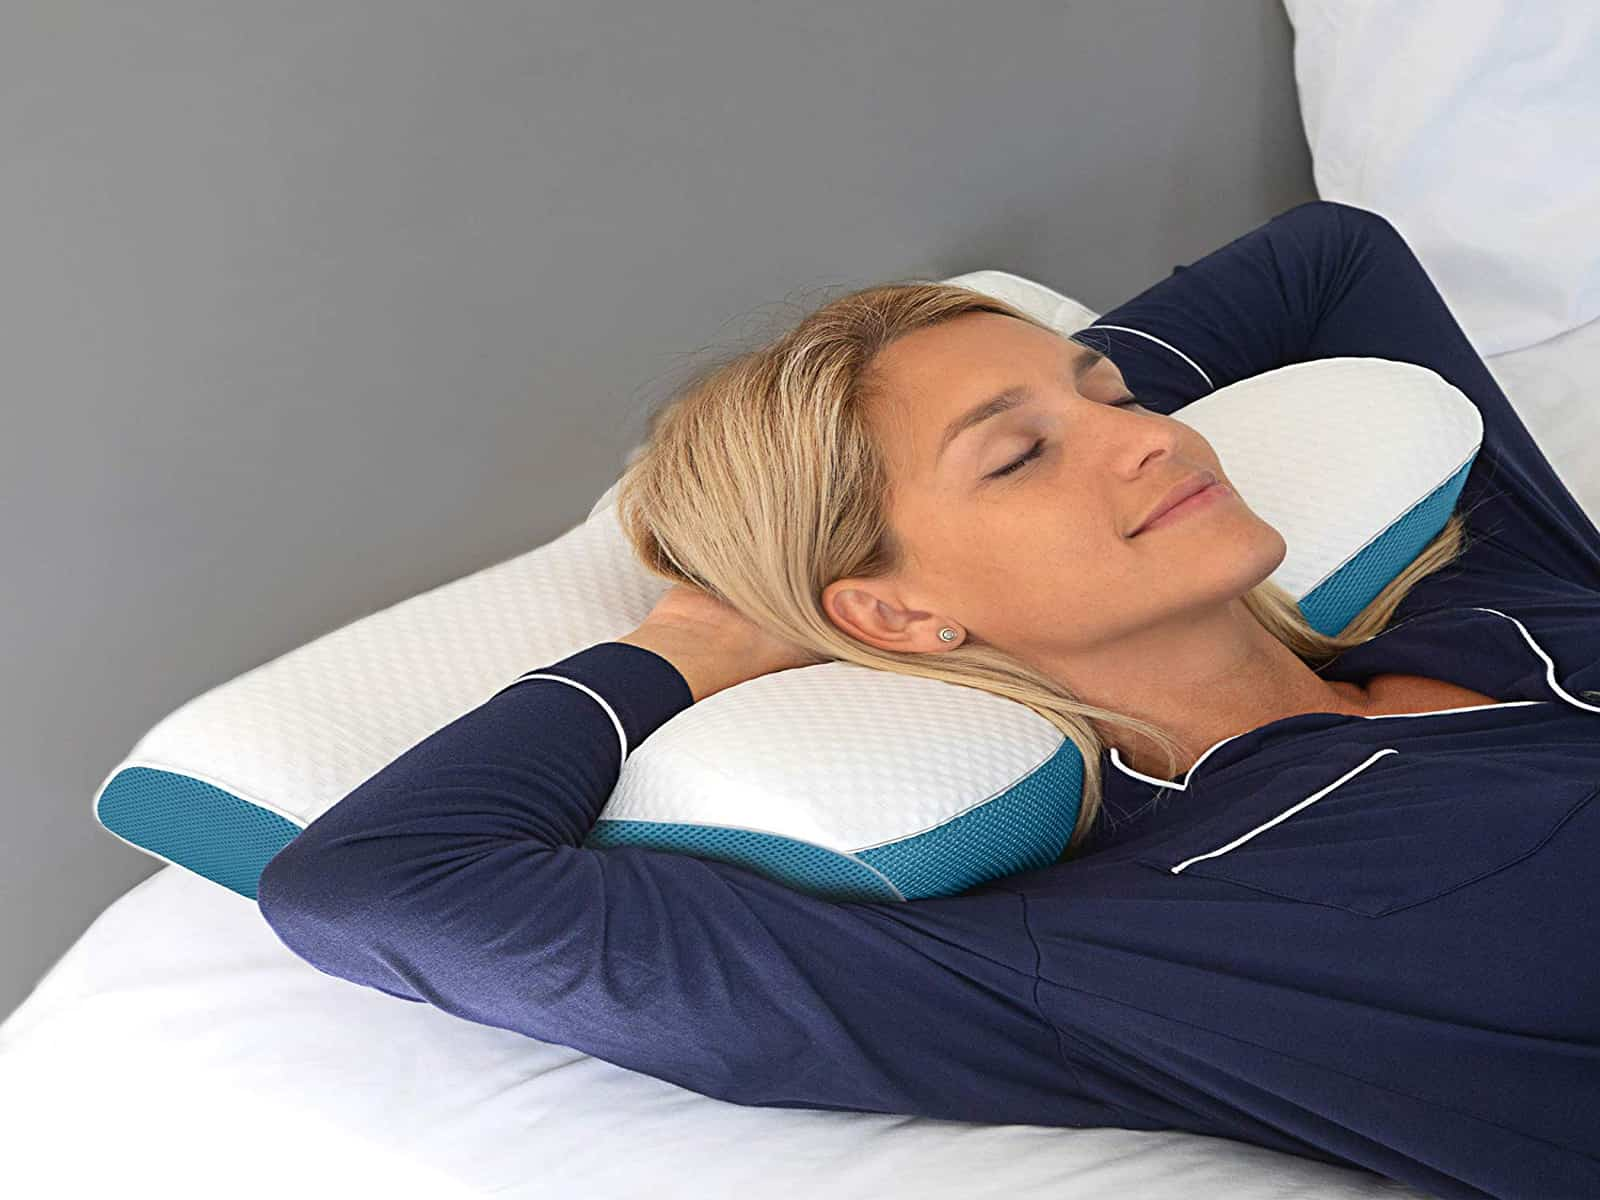 7 Best Pillows for Neck Pain 2020